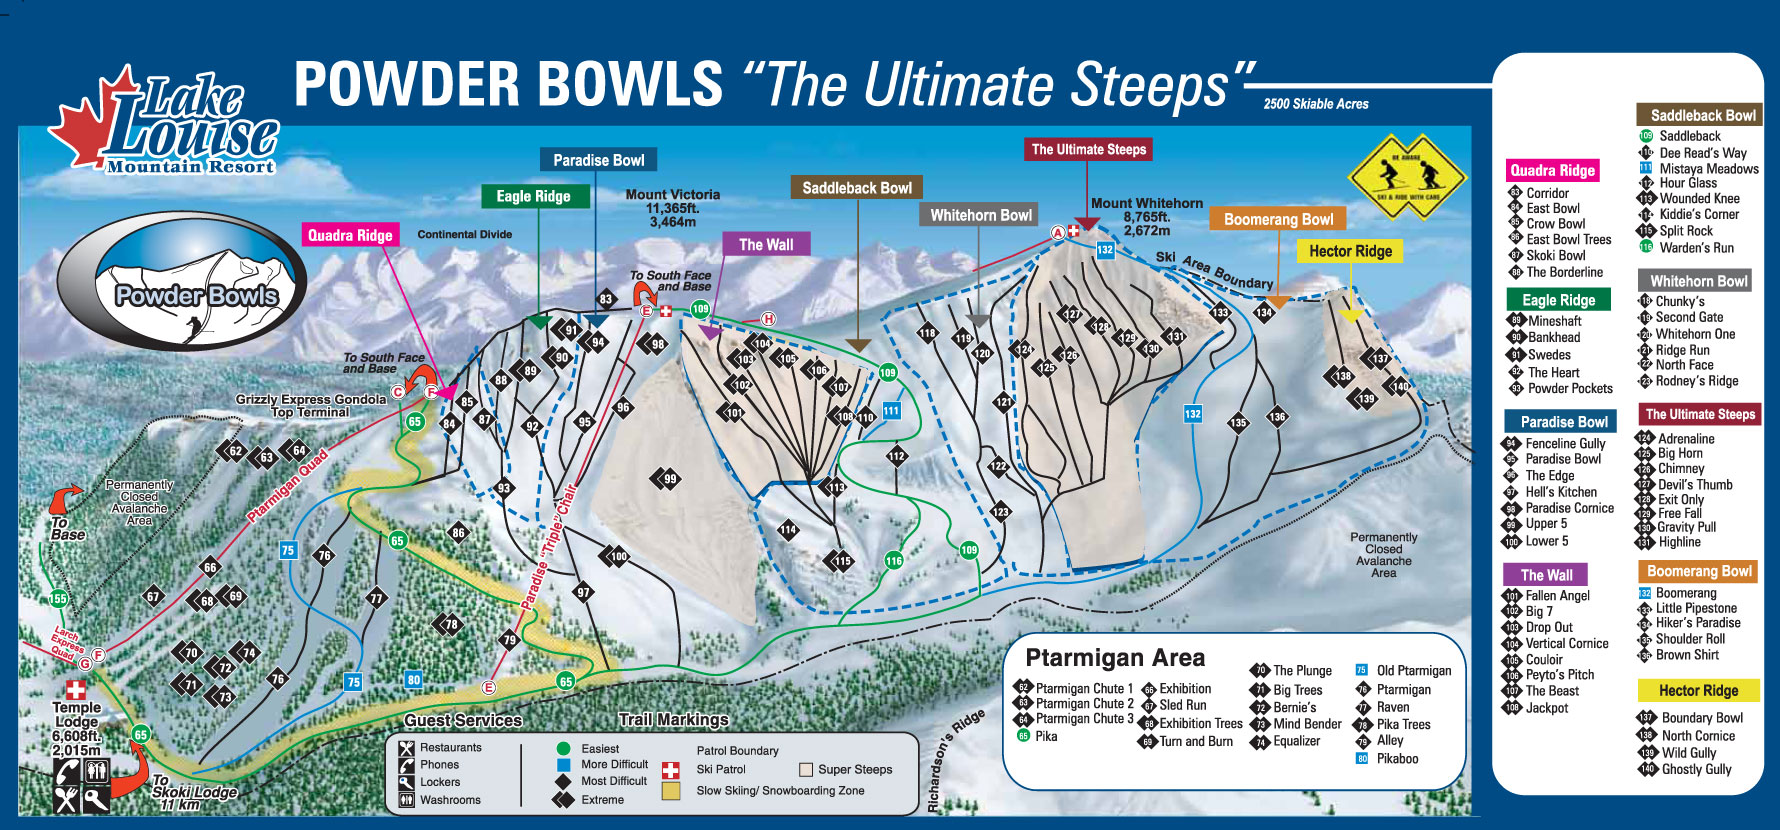 Ski Lake Louise Canada Ski Resort Information Ski Resort - Western us ski resorts map